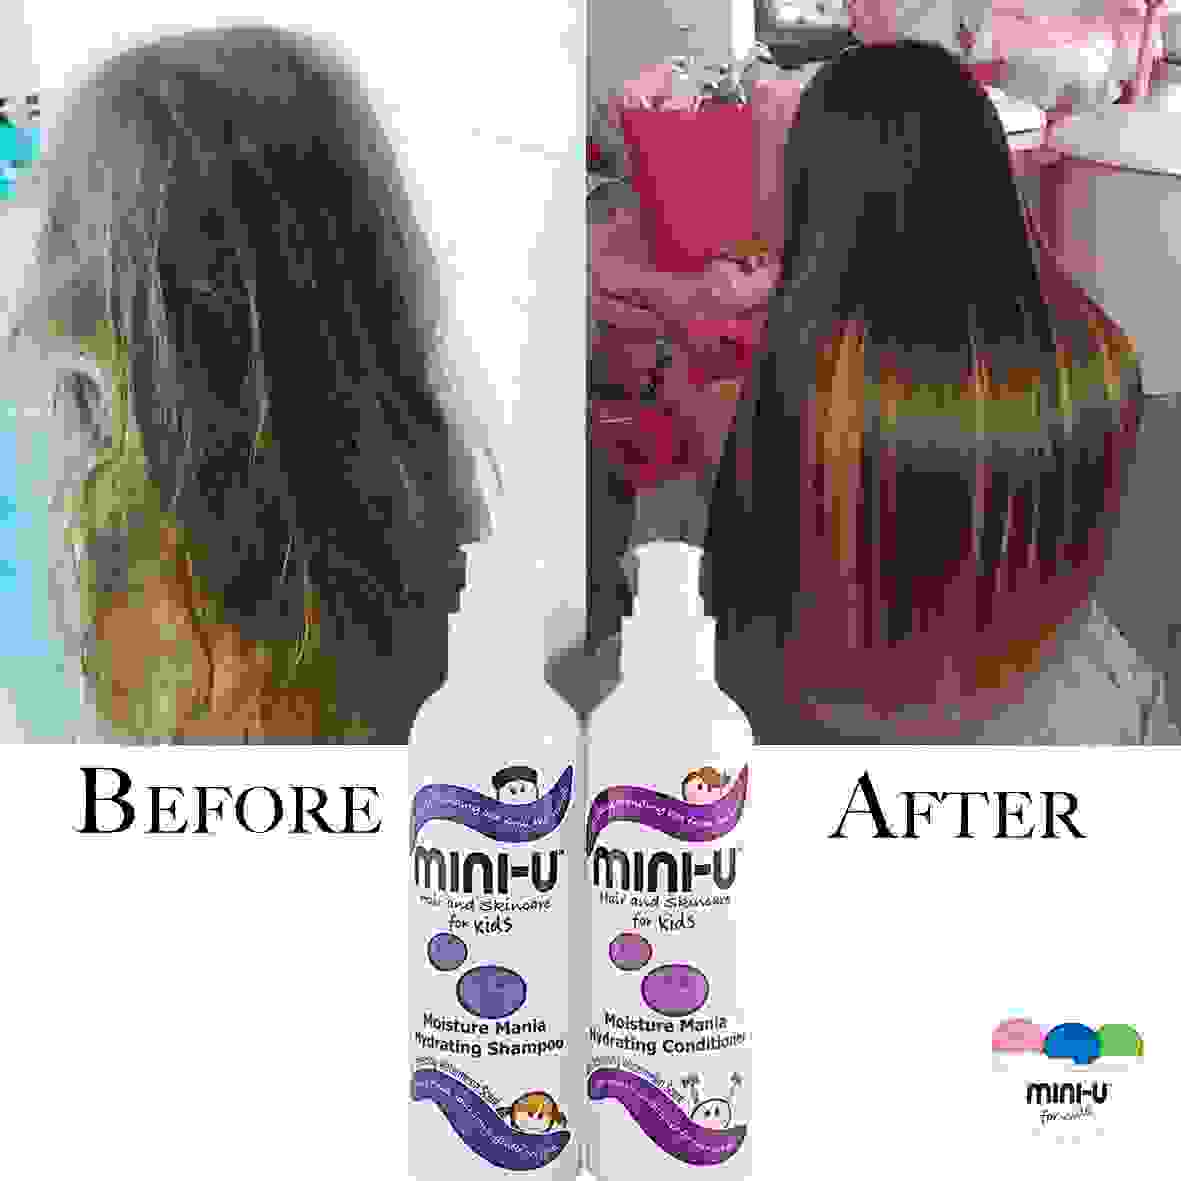 Before and after image of child's hair using shampoo and conditioner from Mini-U